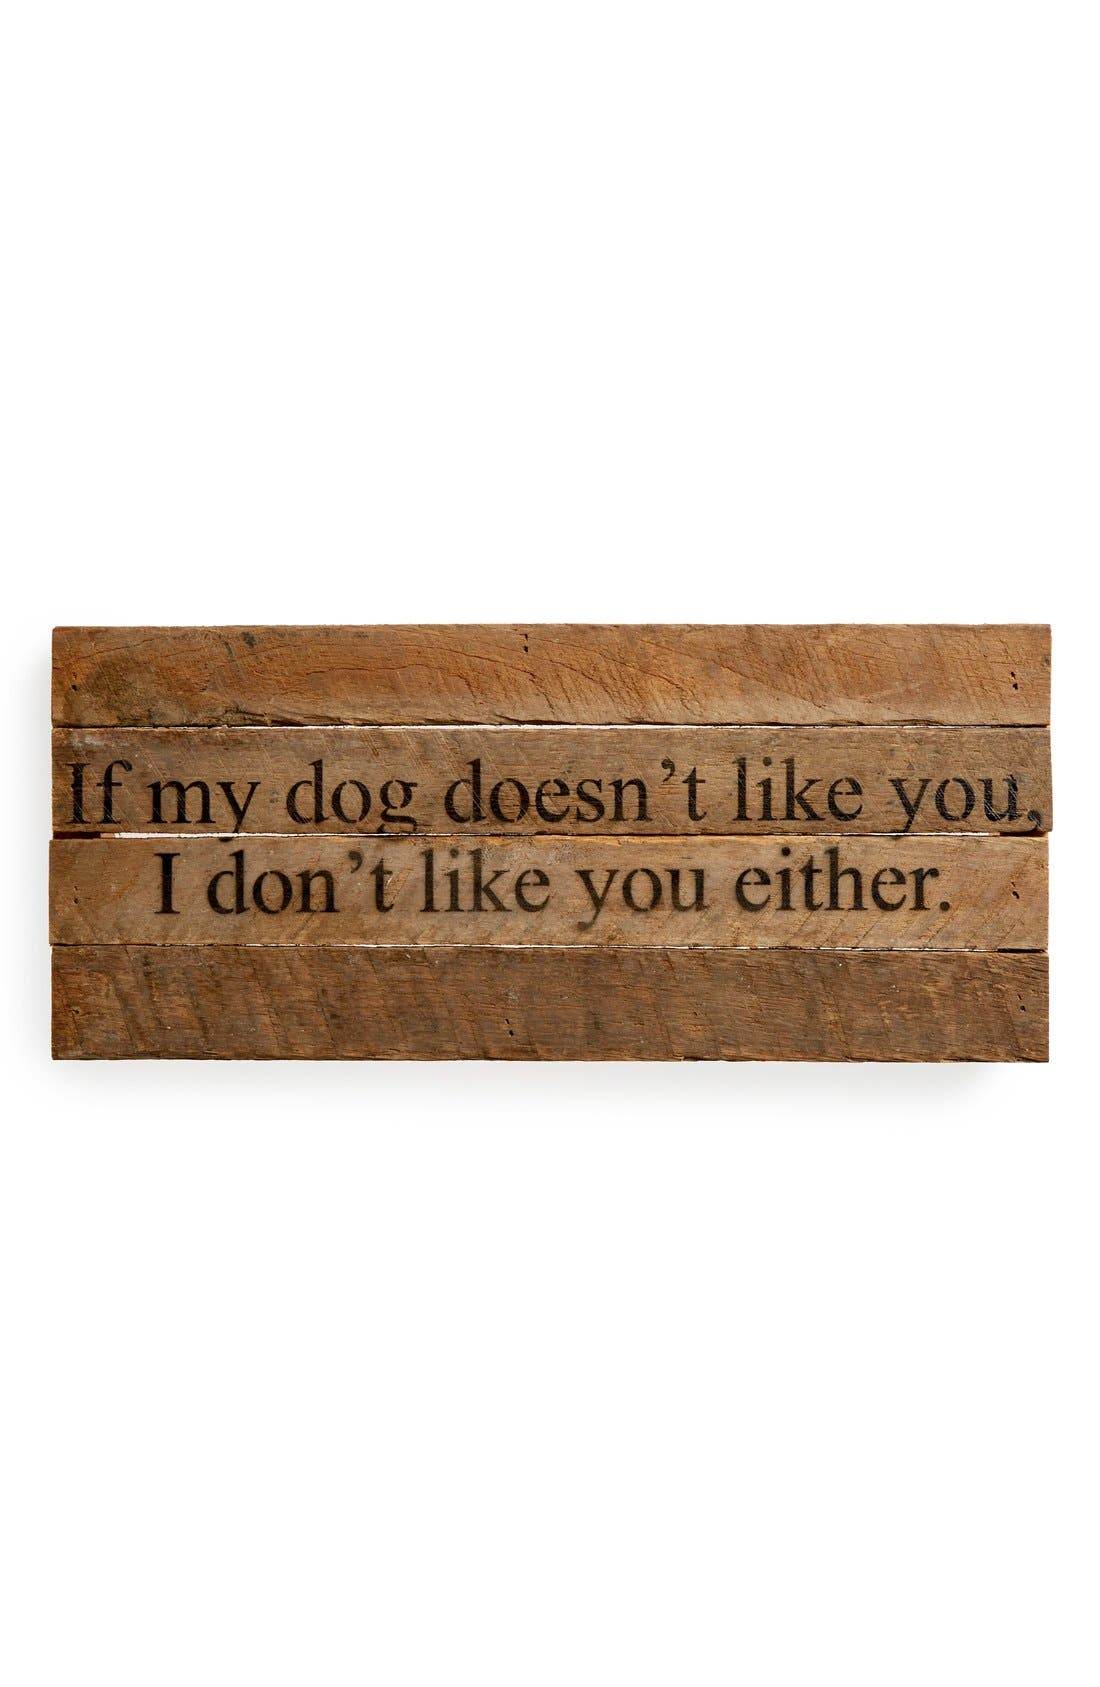 Alternate Image 1 Selected - Second Nature By Hand 'If My Dog Doesn't Like You' Wood Wall Art